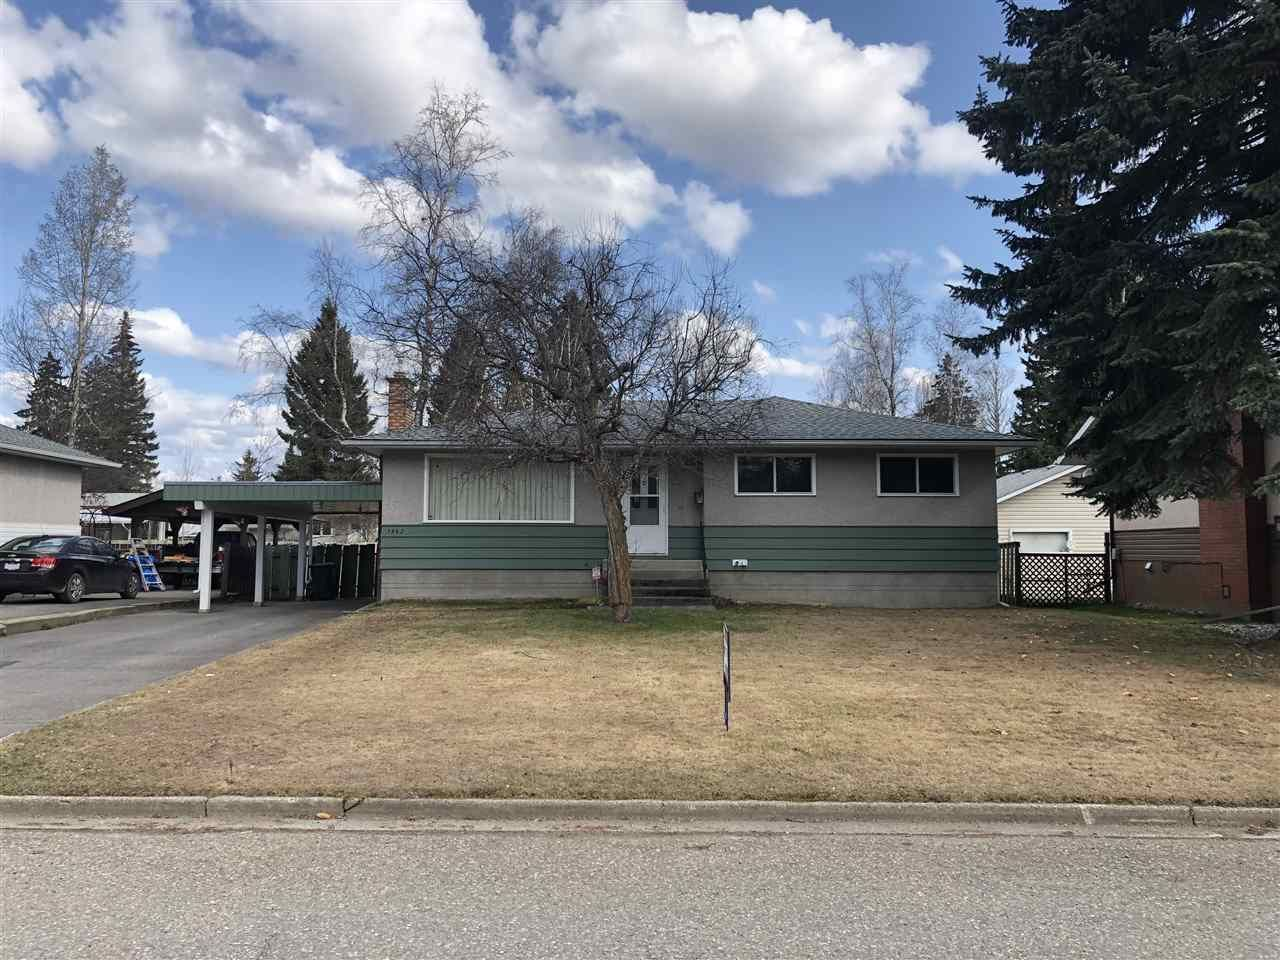 Main Photo: 1862 GARDEN Drive in Prince George: Seymour House for sale (PG City Central (Zone 72))  : MLS®# R2348840